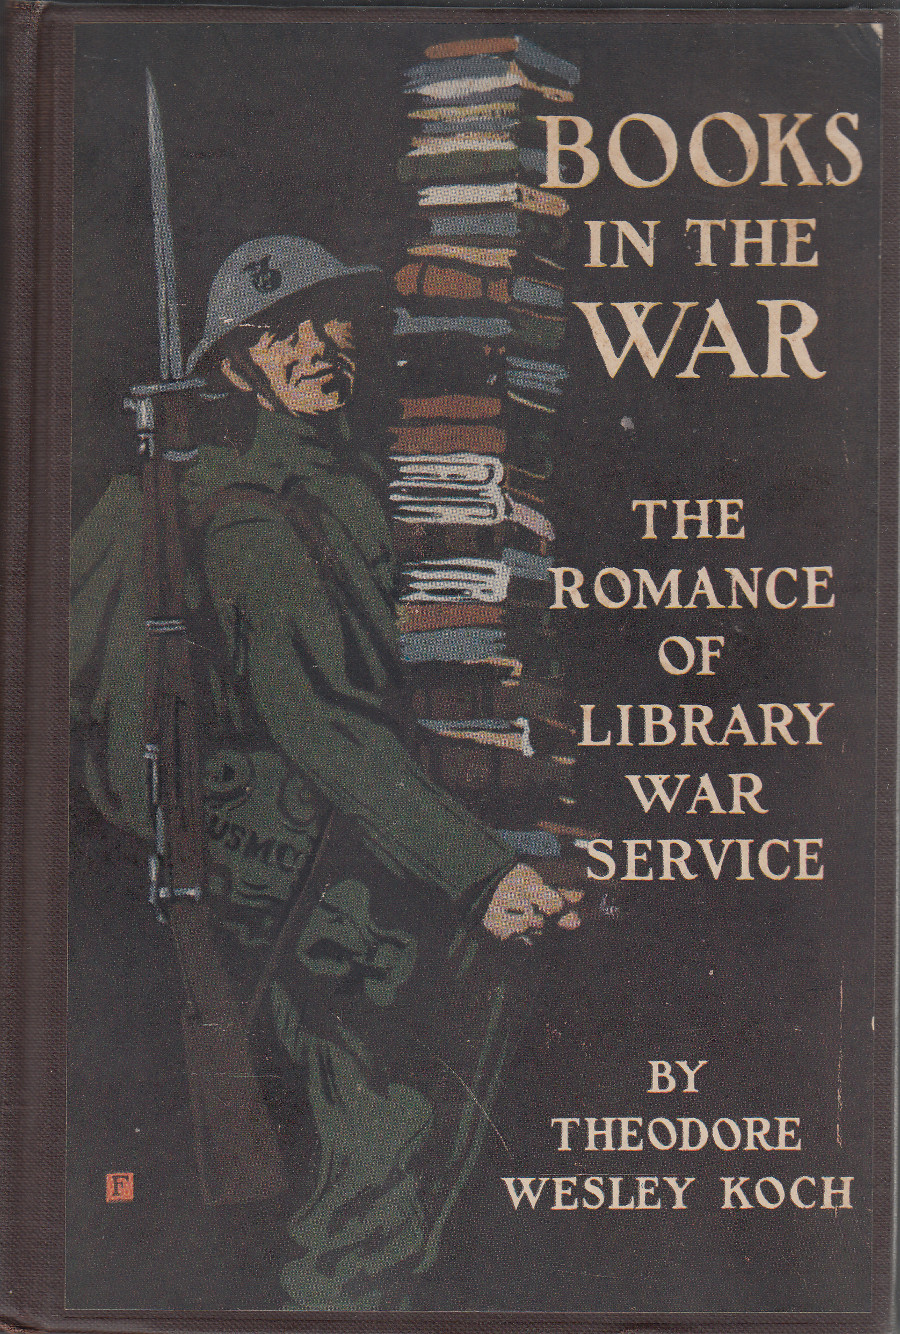 books in the war cover